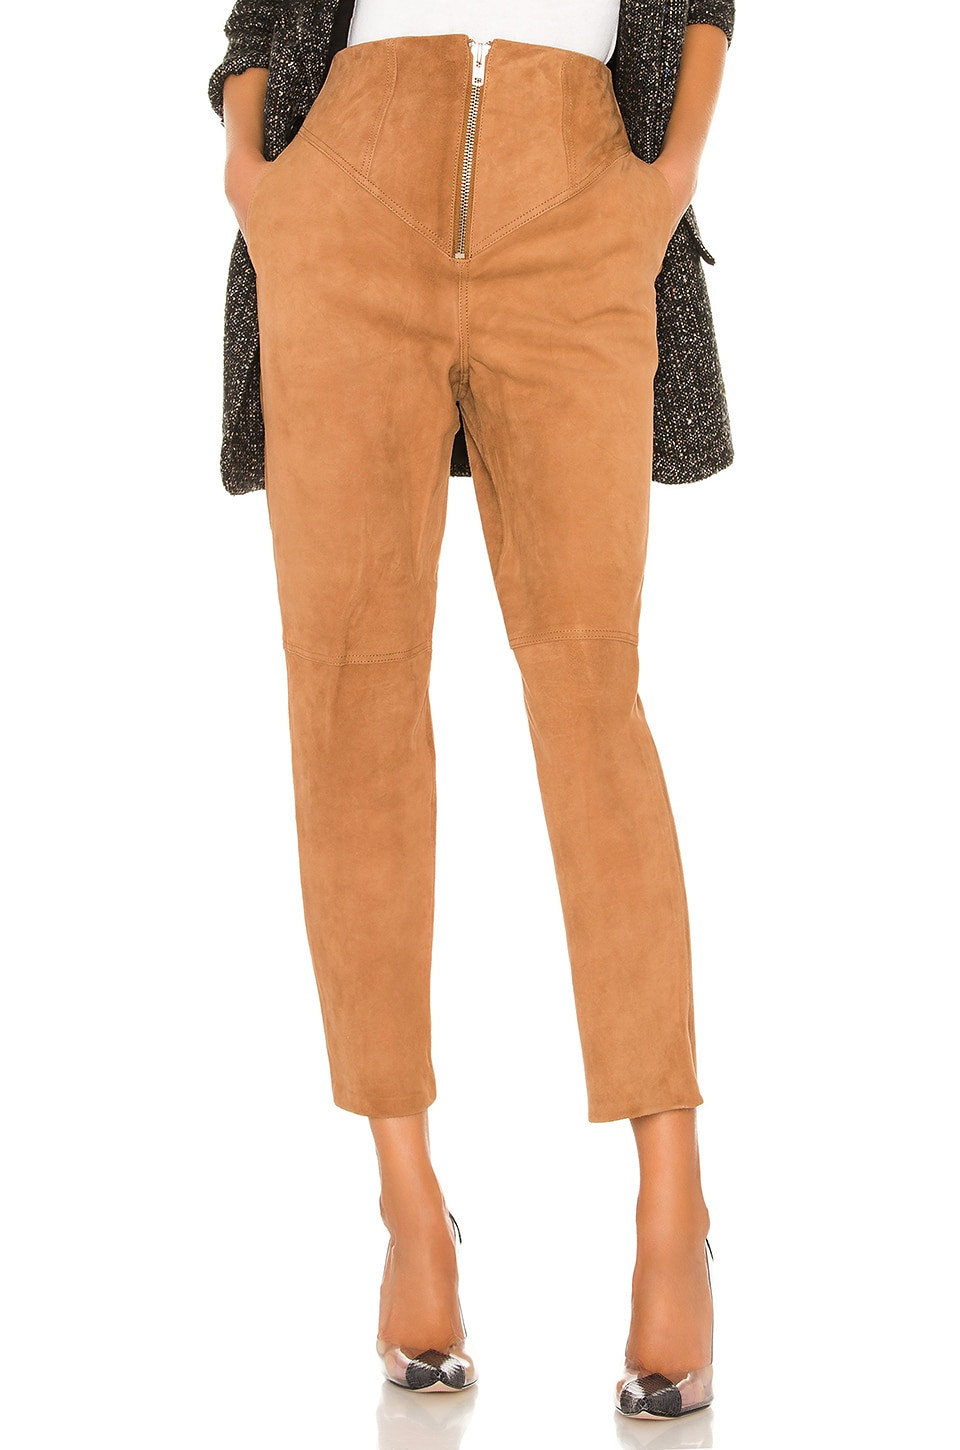 L'Academie Ansley Leather Pant in Nude Camel